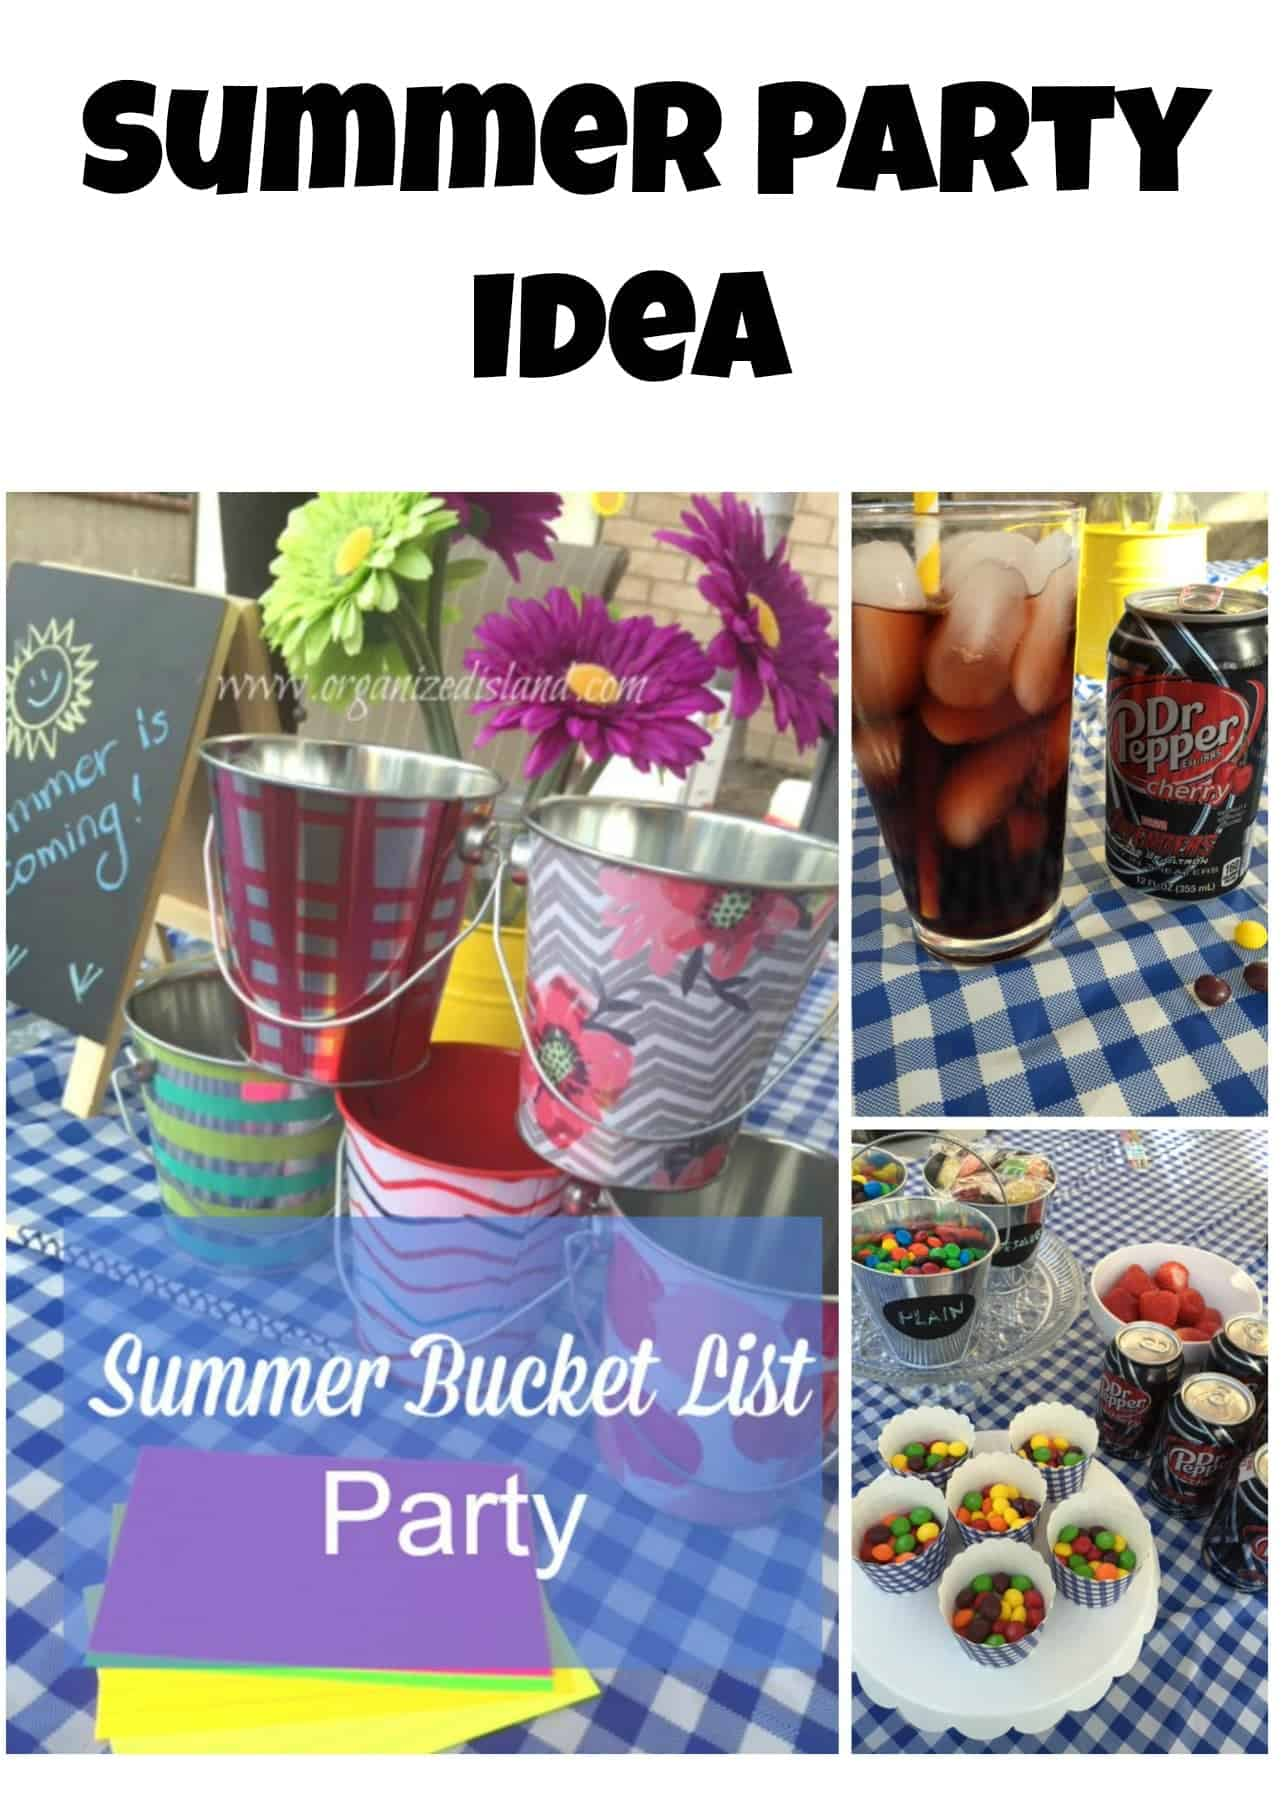 Plan a fun summer bucket list party! Great for all ages to do together!